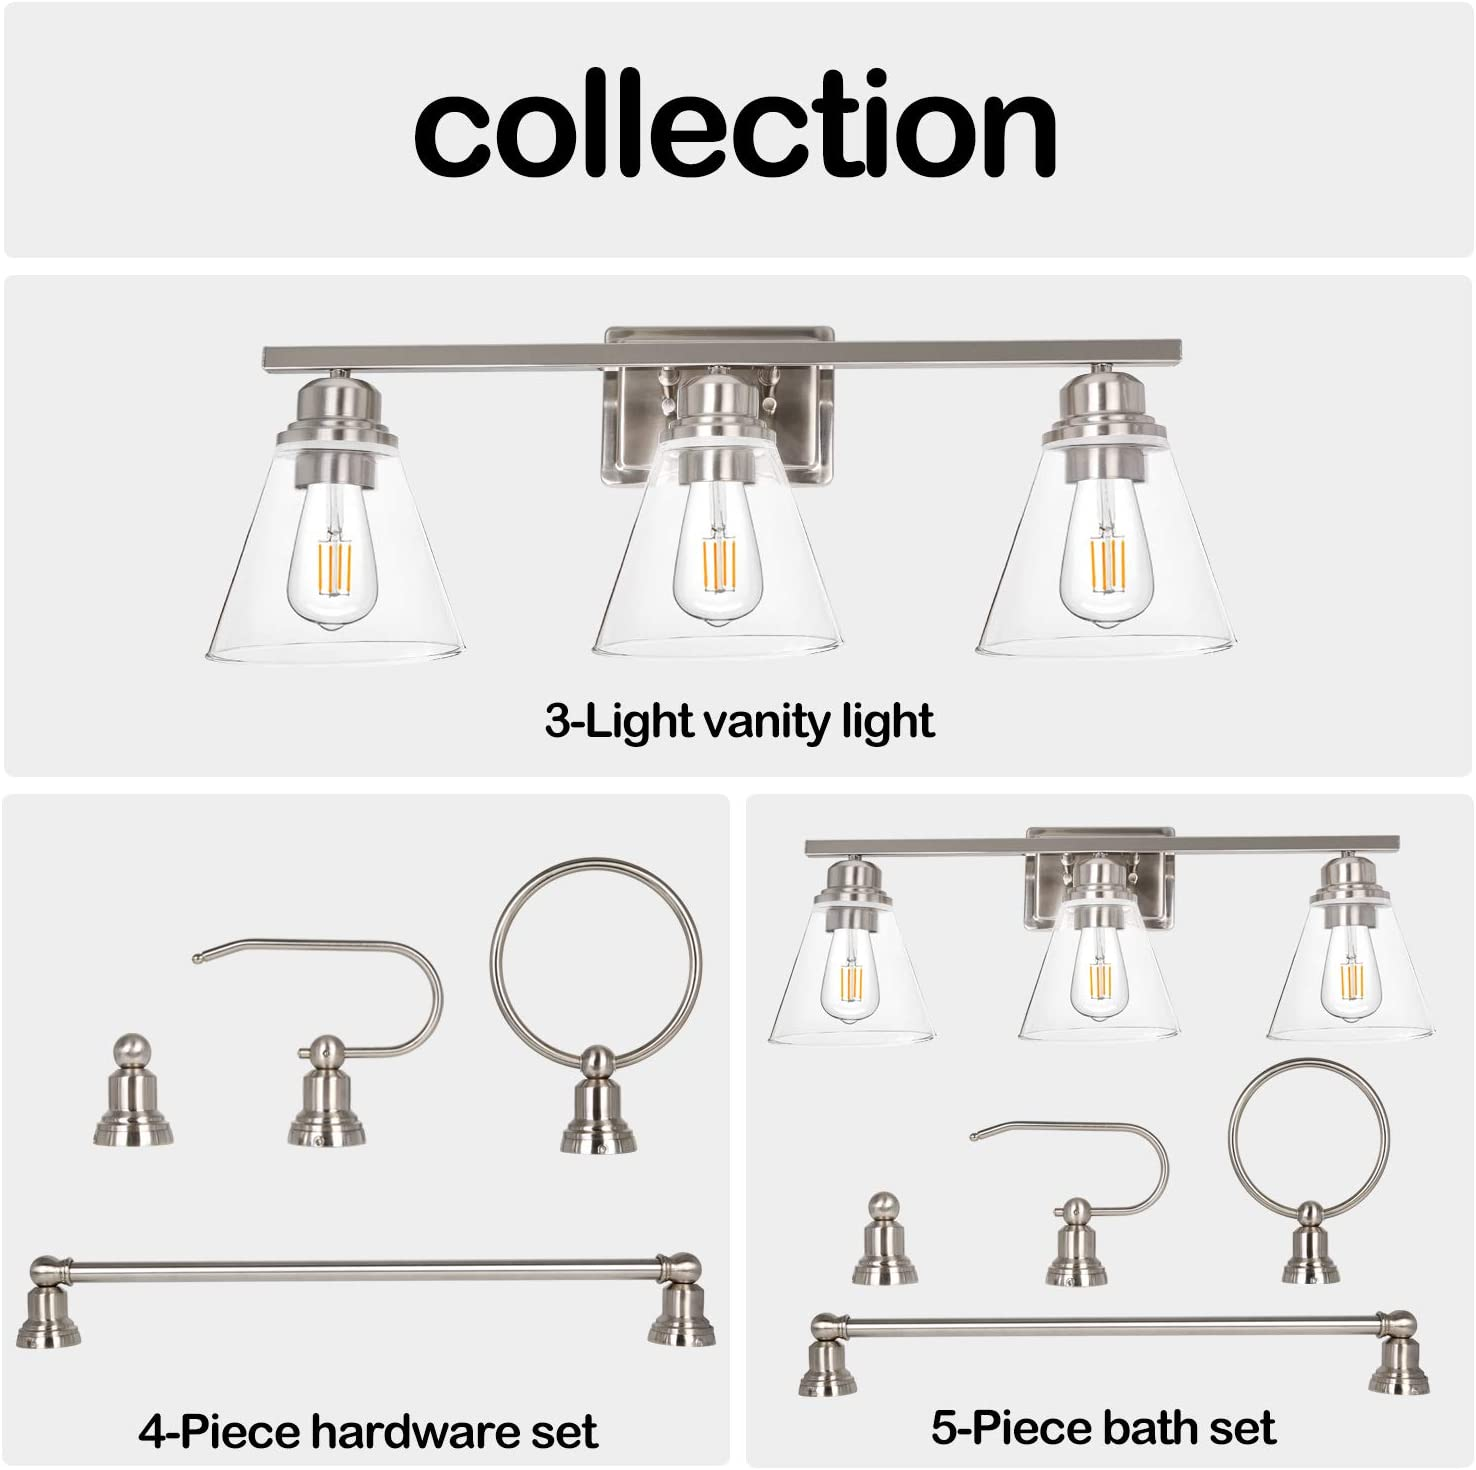 3-Light Vanity Light Fixture, 5-Piece All-in-One Bathroom Set (Led Edison Bulbs as Bonus), Brushed Nickel Wall Sconce Lighting with Glass Shads, ETL Listed - -